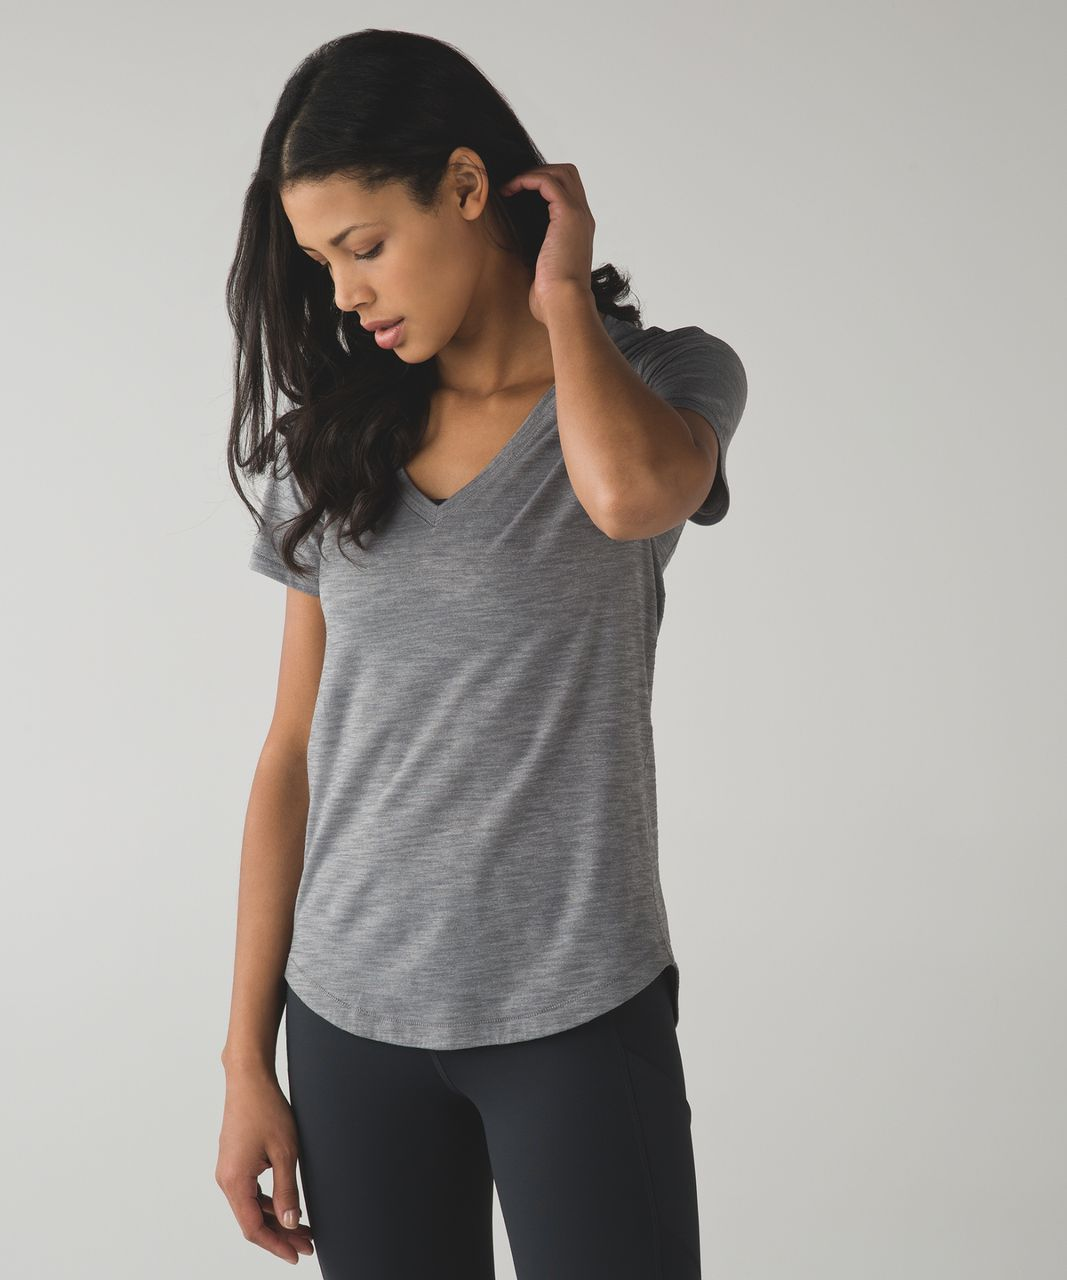 Lululemon What The Sport Tee - Heathered Slate